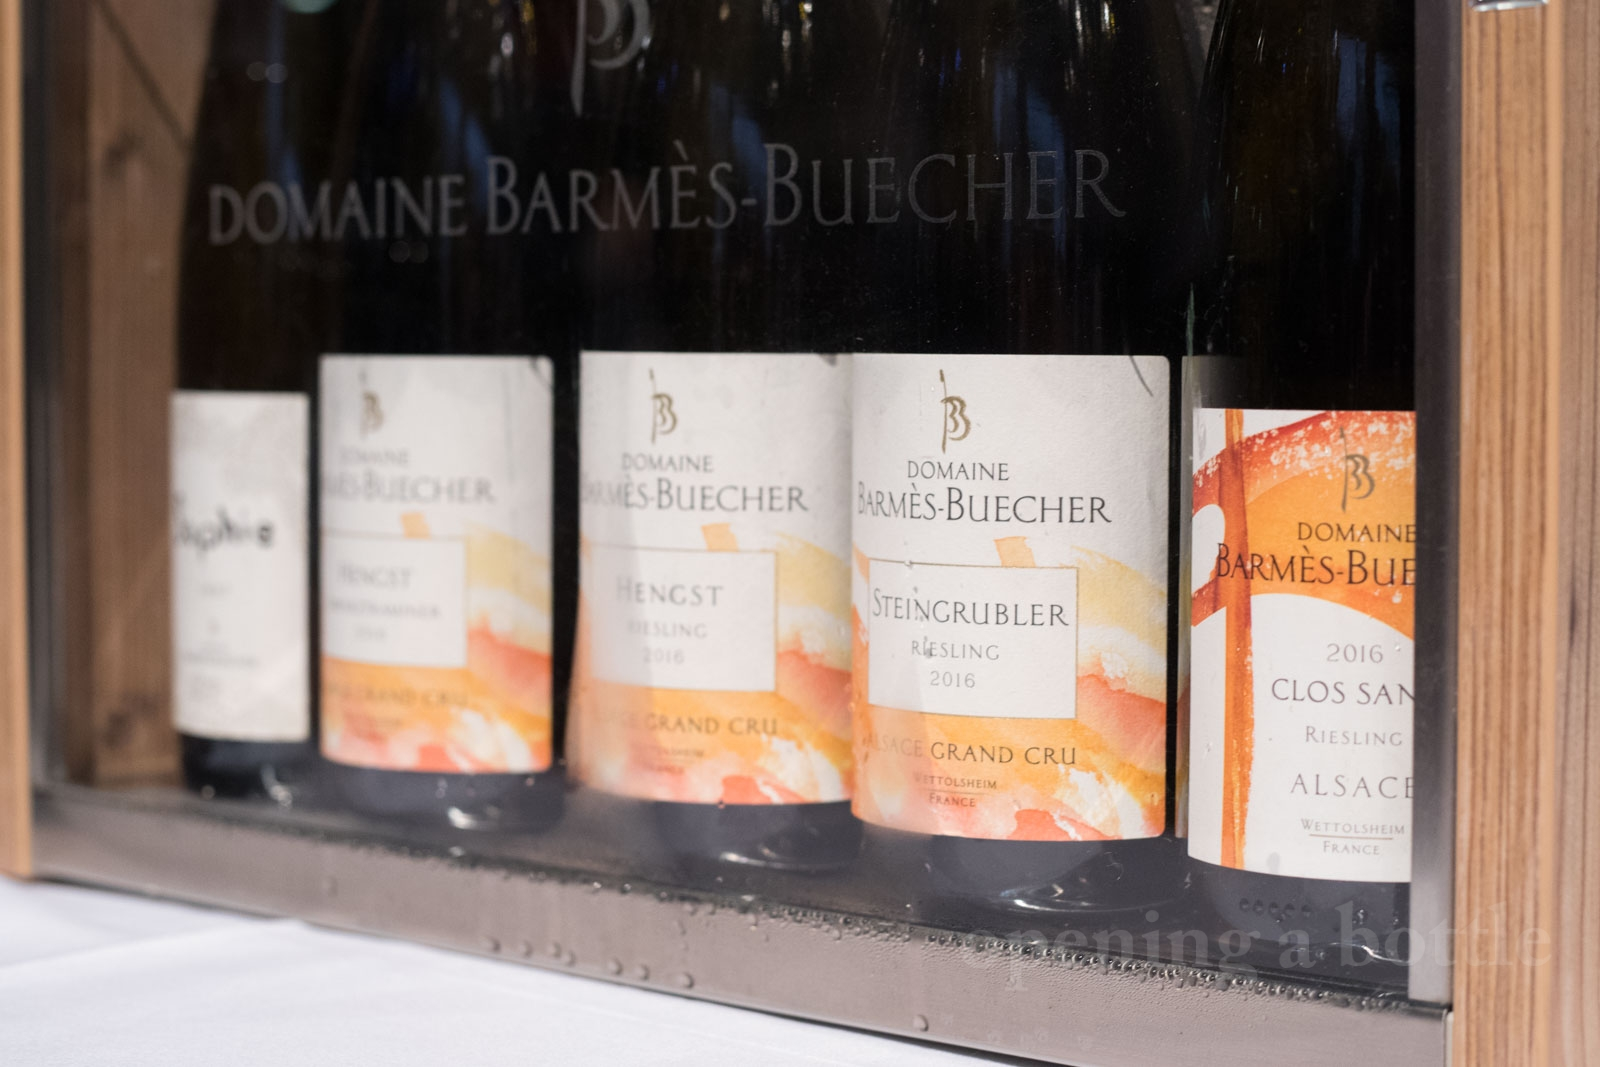 The wines of Barmès-Buecher. ©Kevin Day/Opening a Bottle